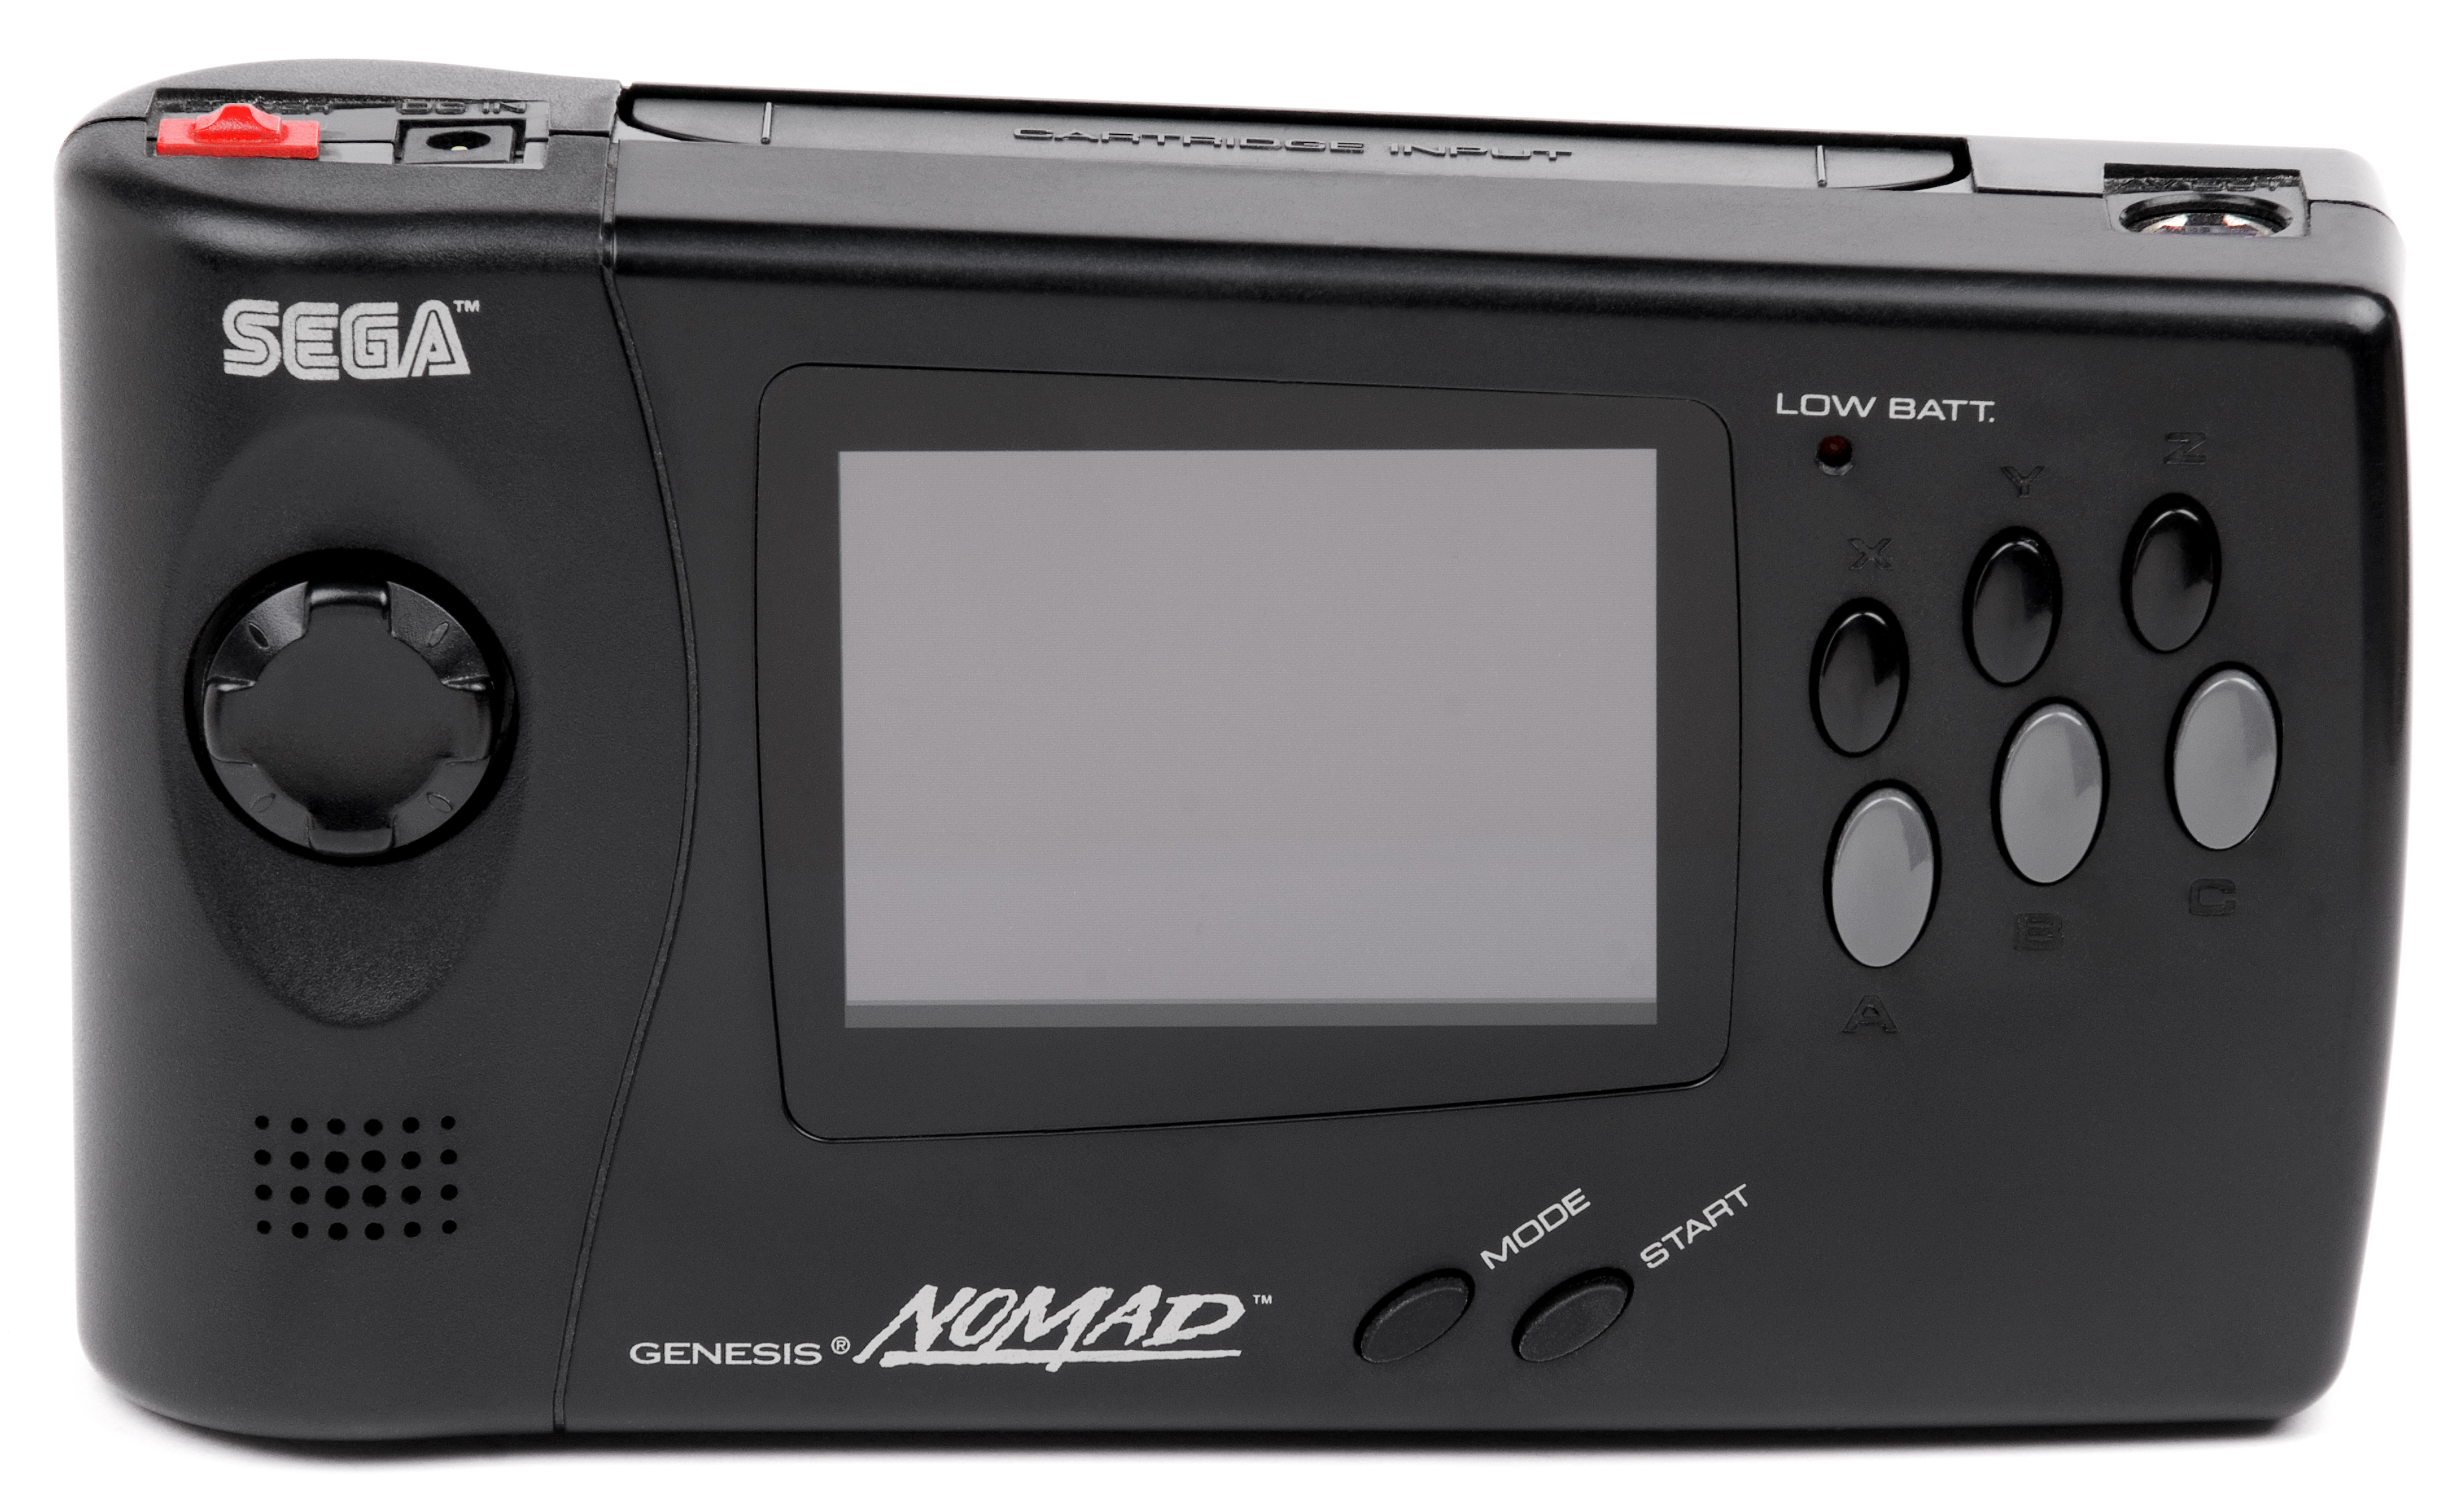 Hardware like the Nomad helped draw Sega's focus away from what had made it successful in the first place.